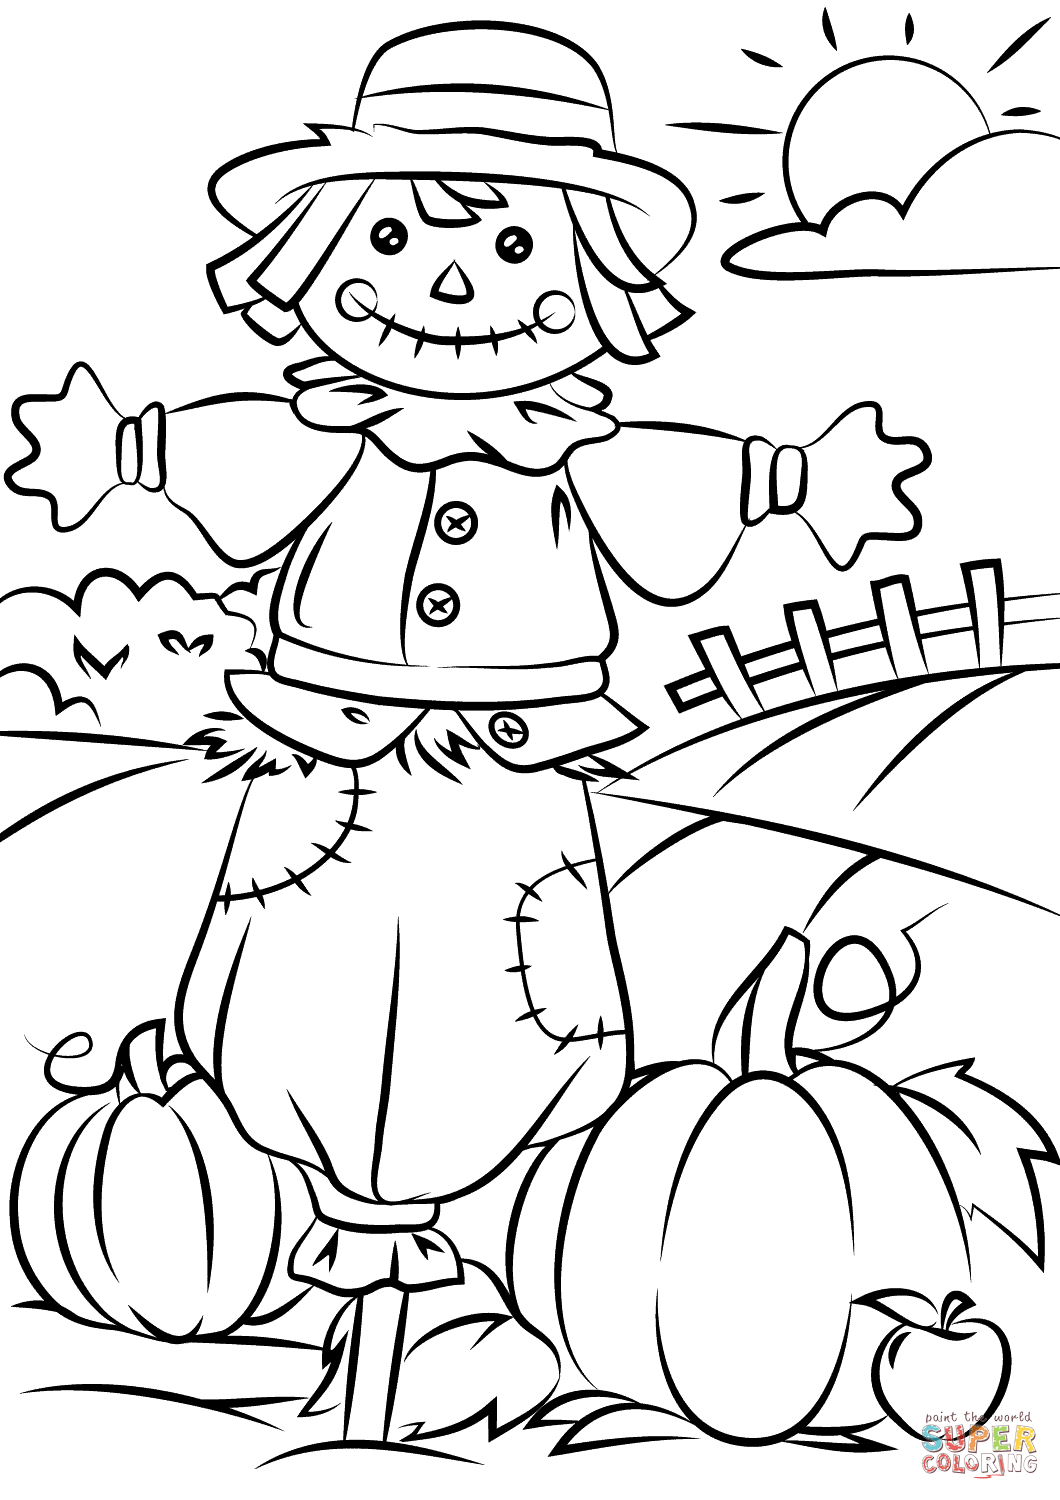 Coloring Autumn Scene with Scarecrow Coloring Page Free